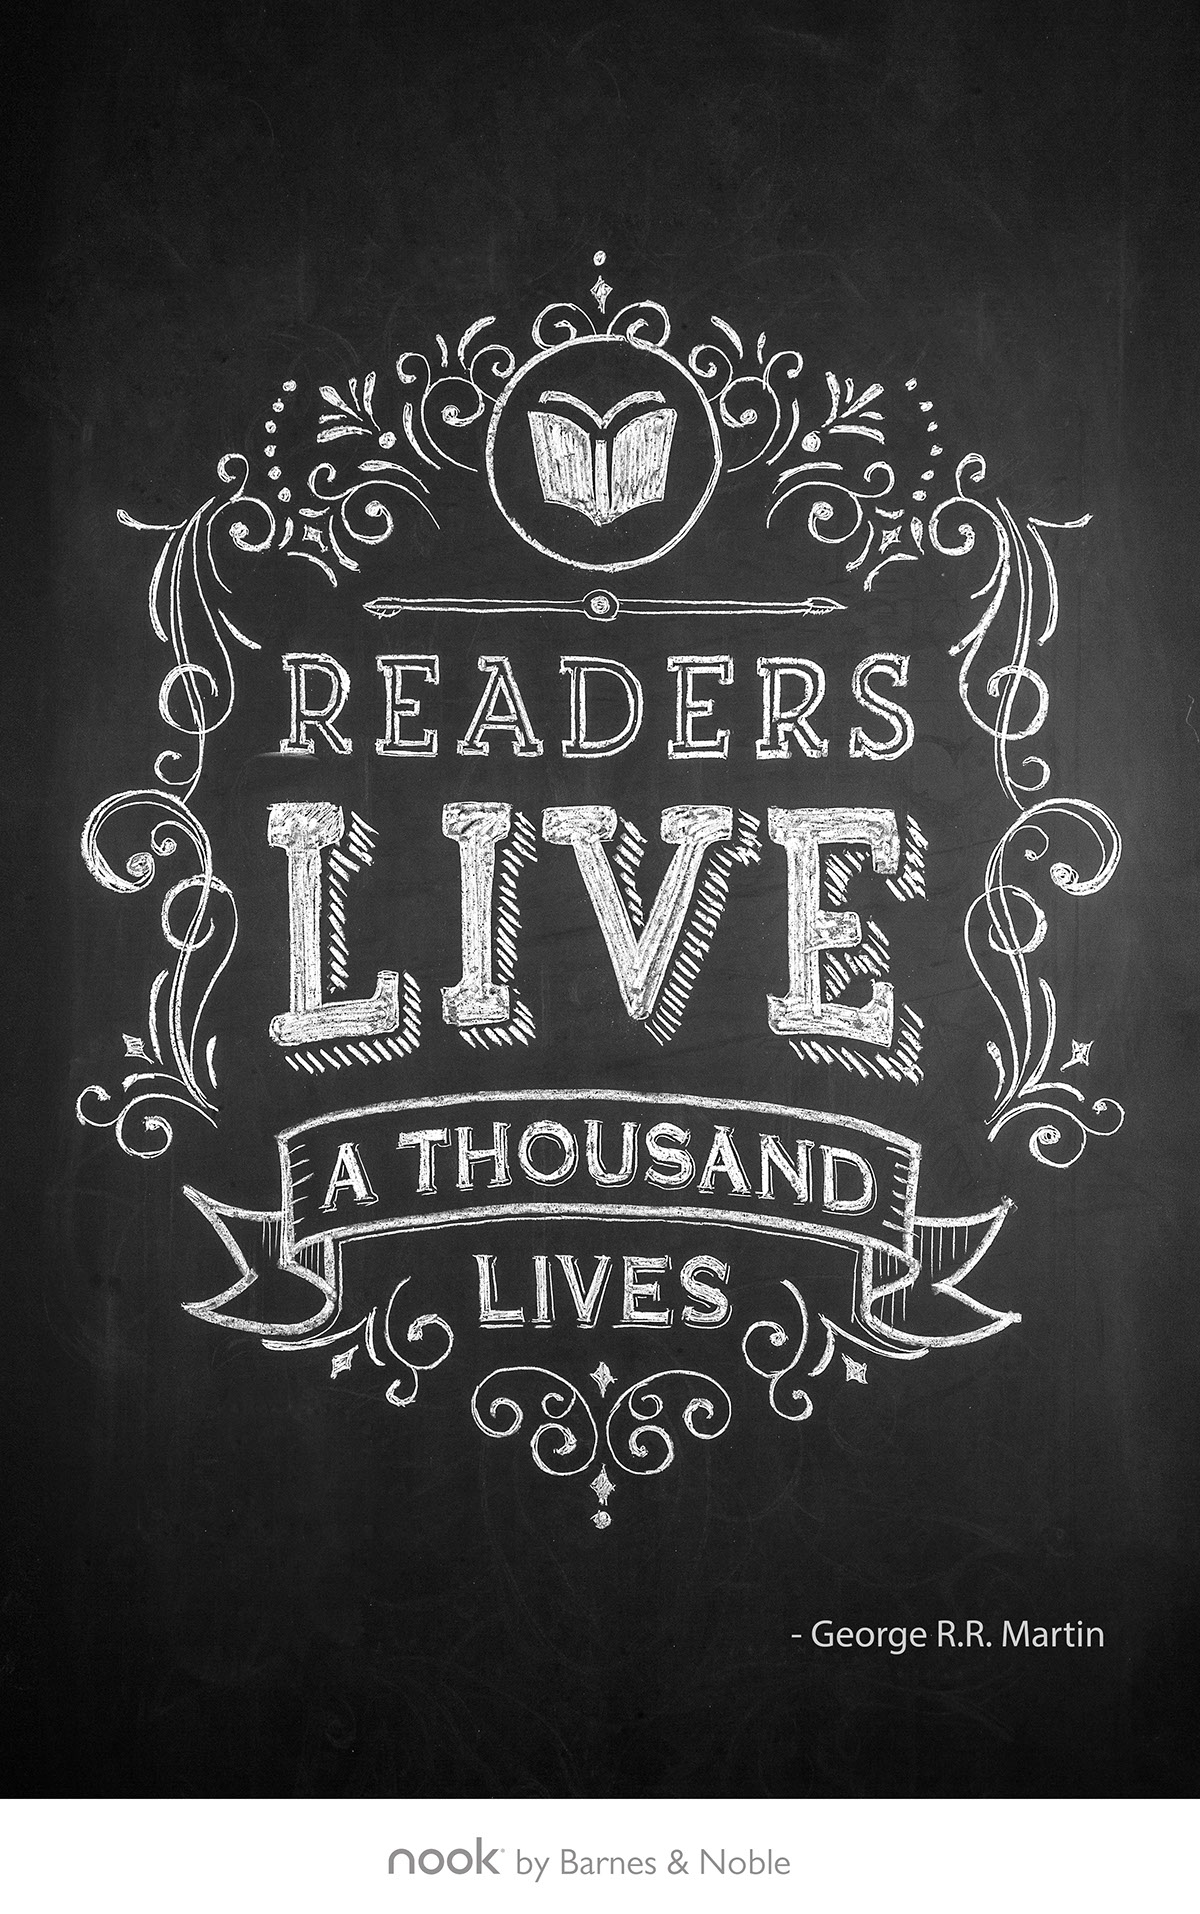 Chalk Drawings for Barnes & Noble on Behance